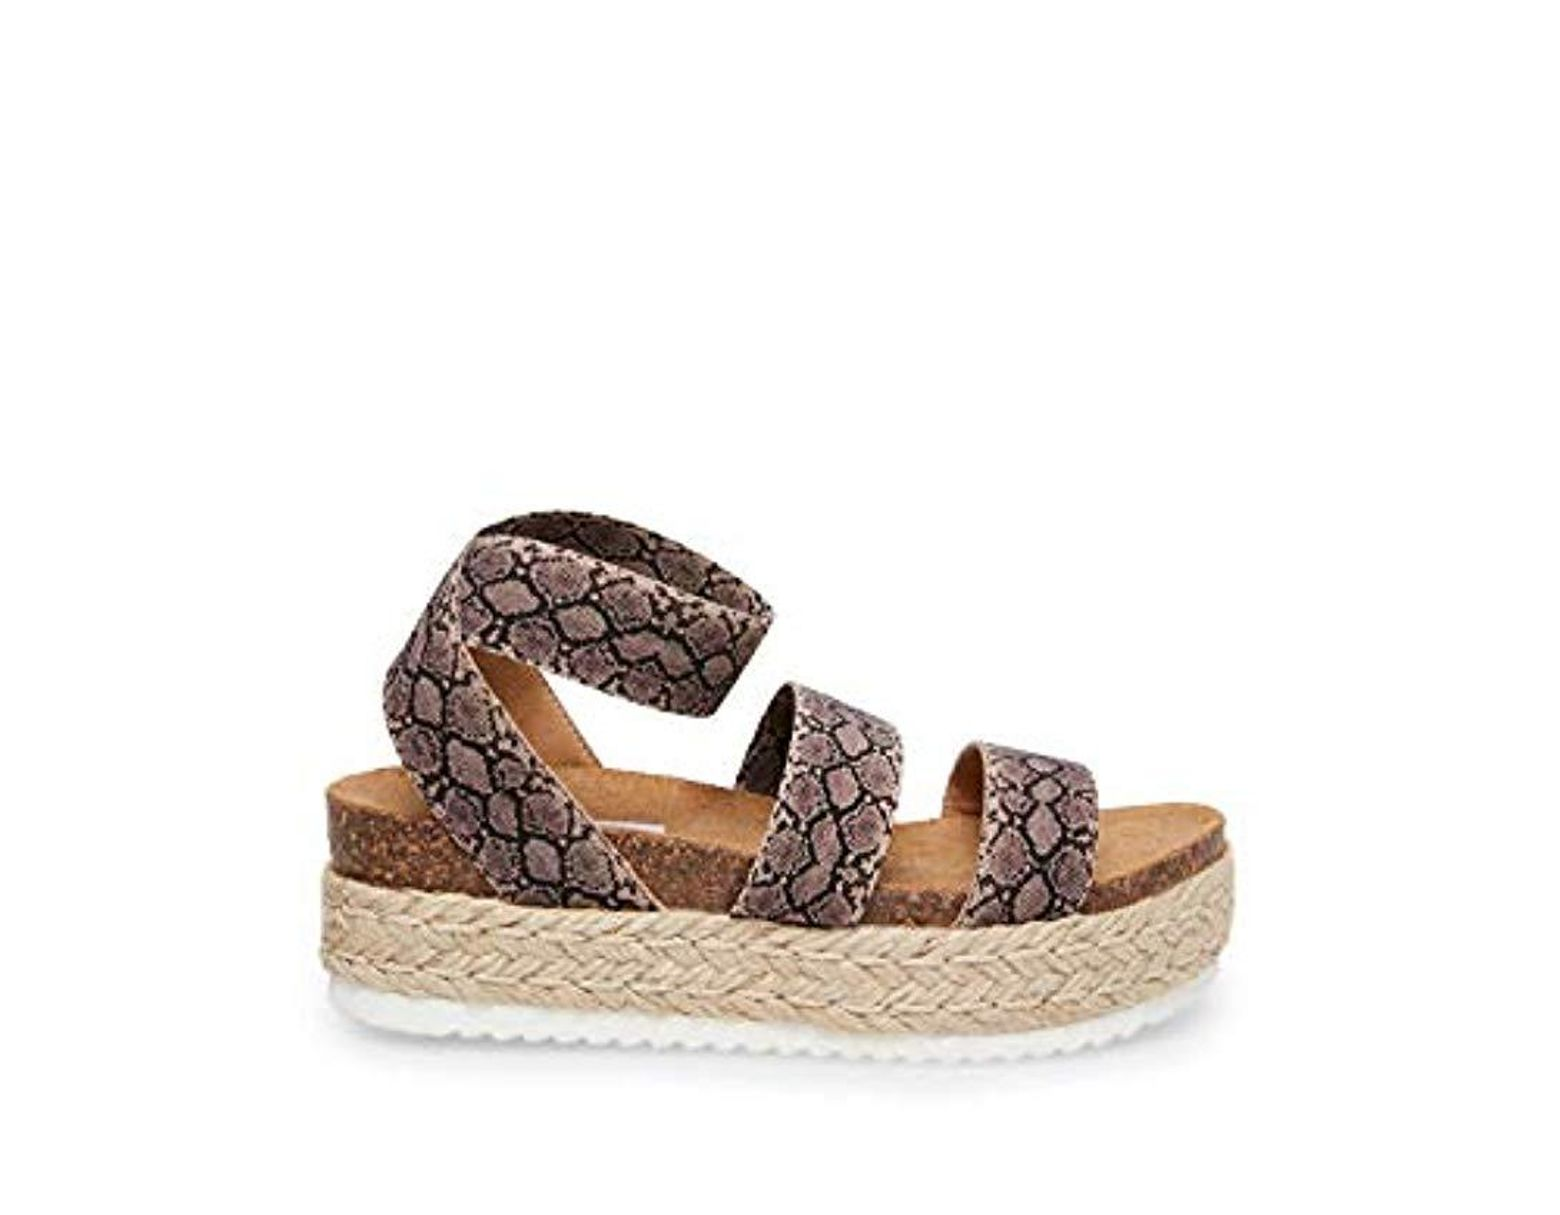 fa90efac55f Women's Brown Kimmie Espadrille Wedge Sandal